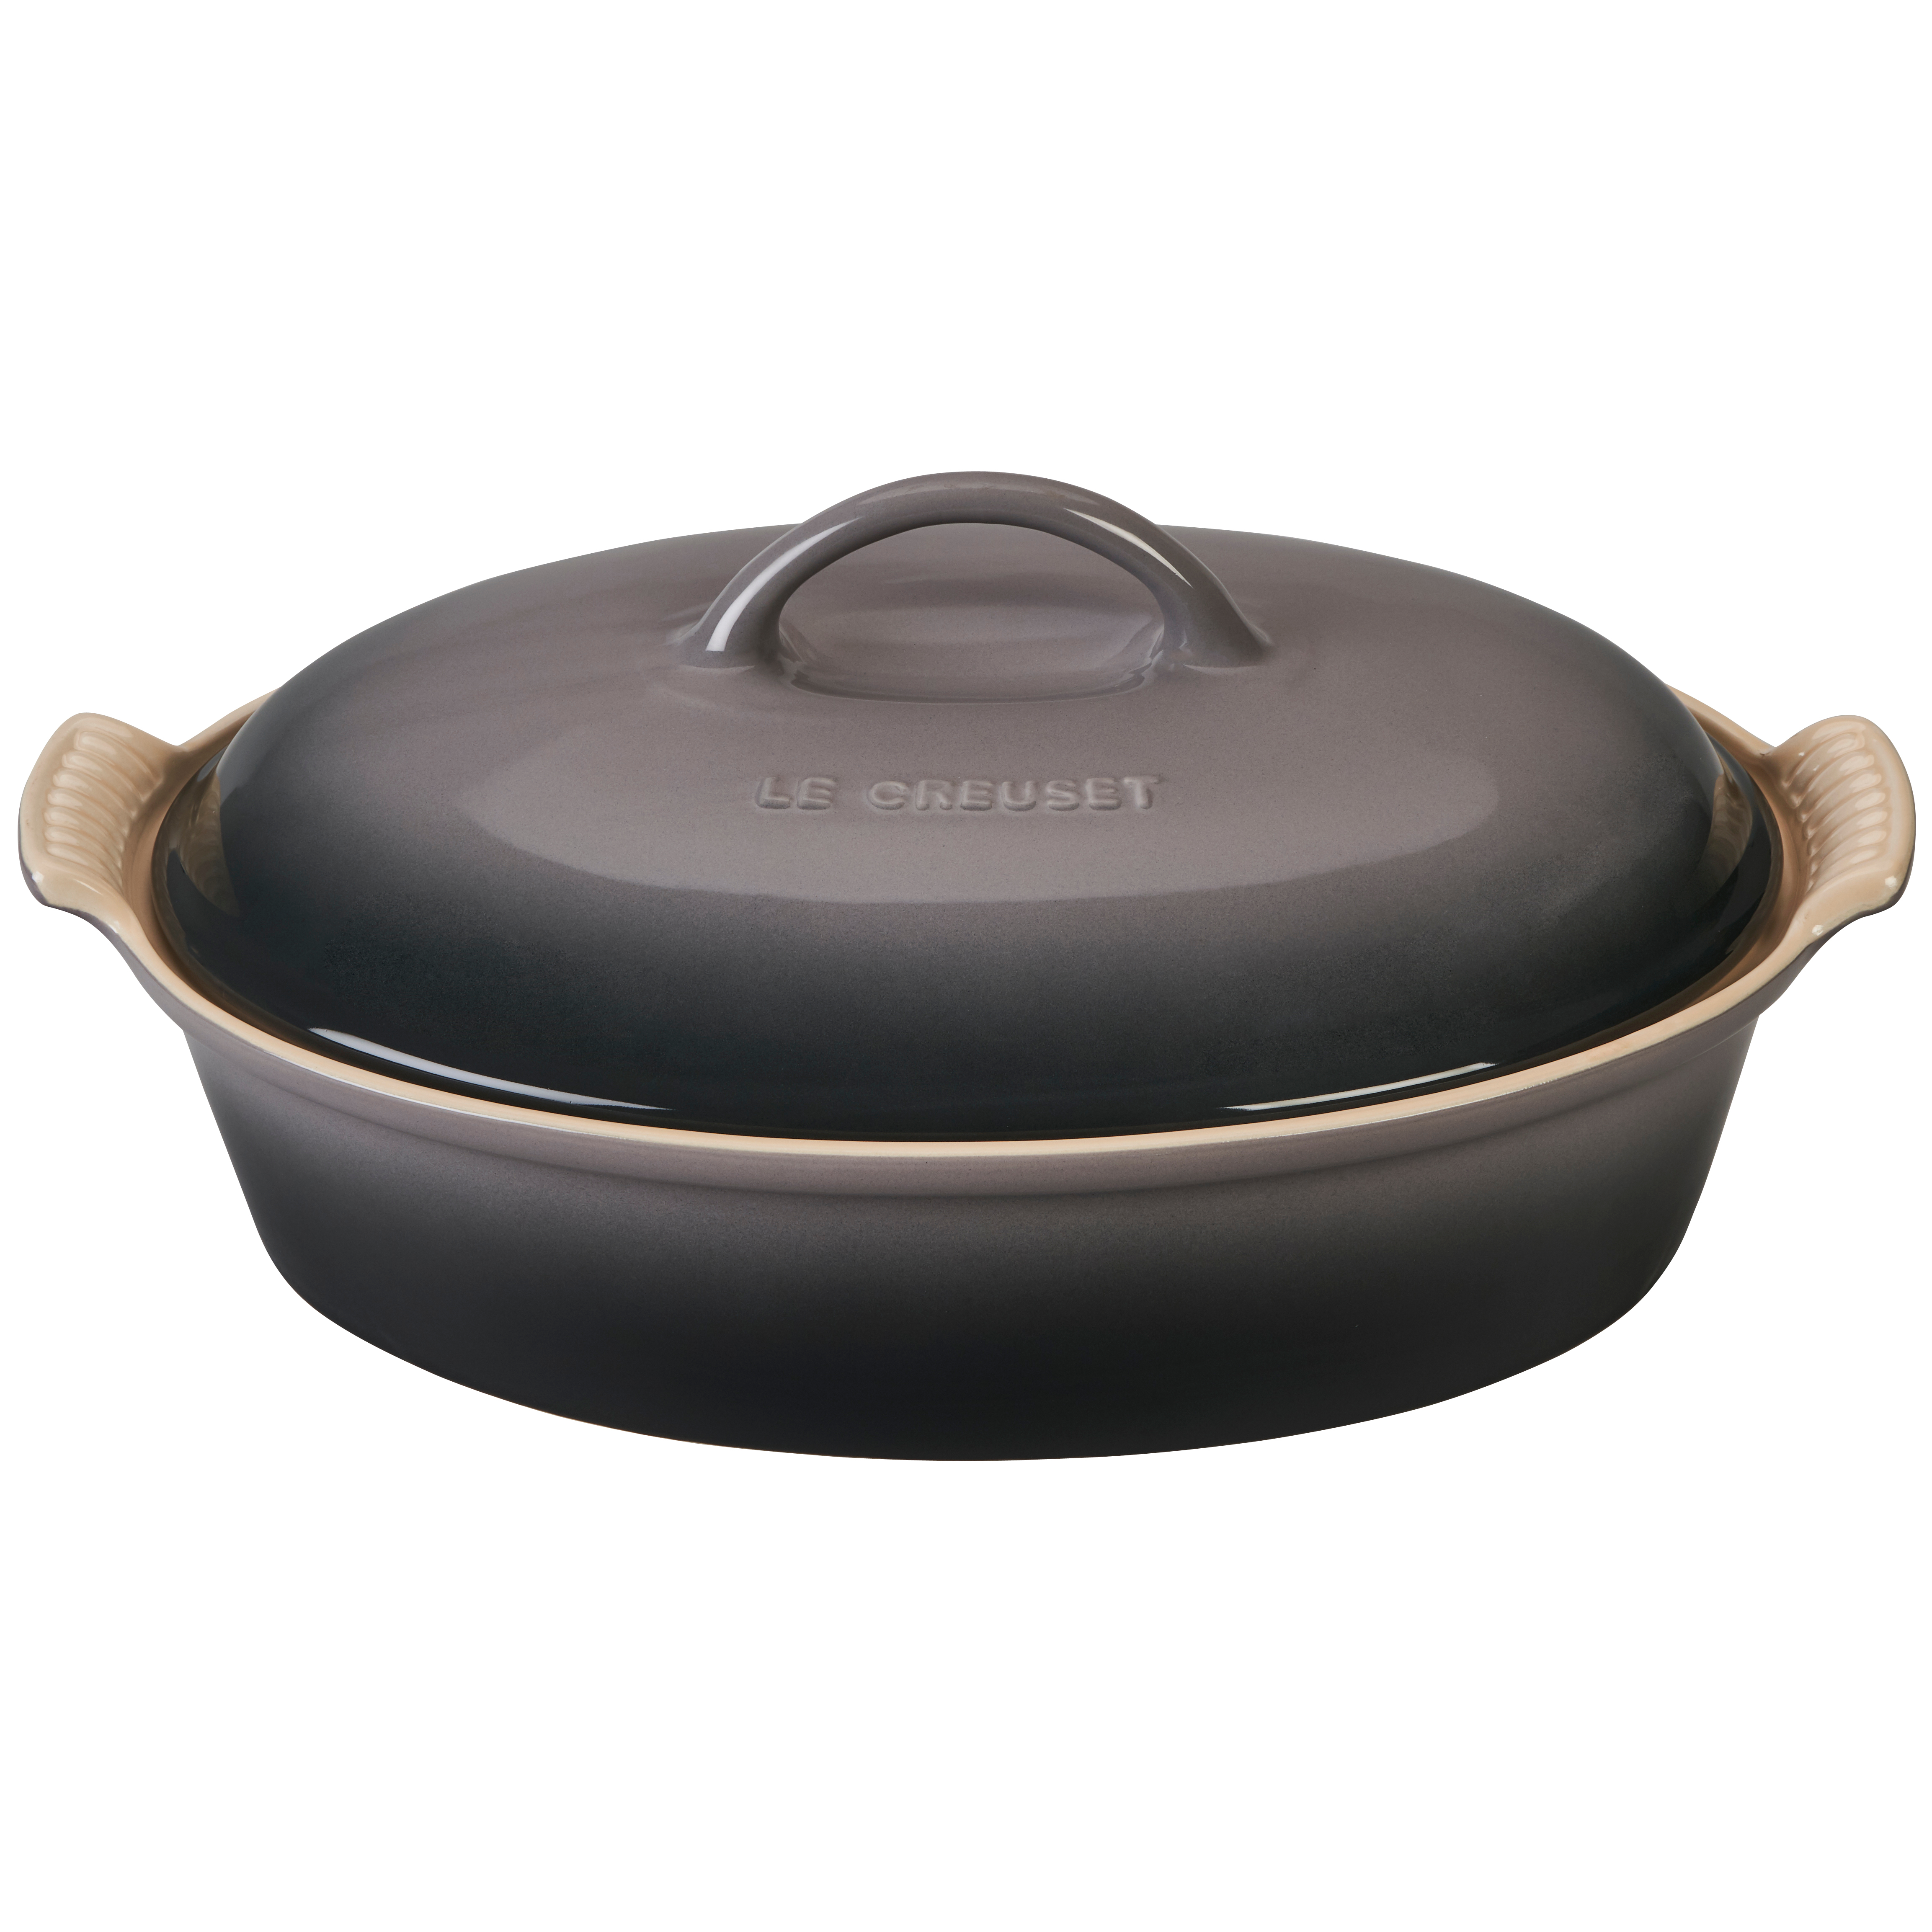 Le Creuset Heritage Oyster Stoneware 4 Quart Covered Oval Casserole Dish